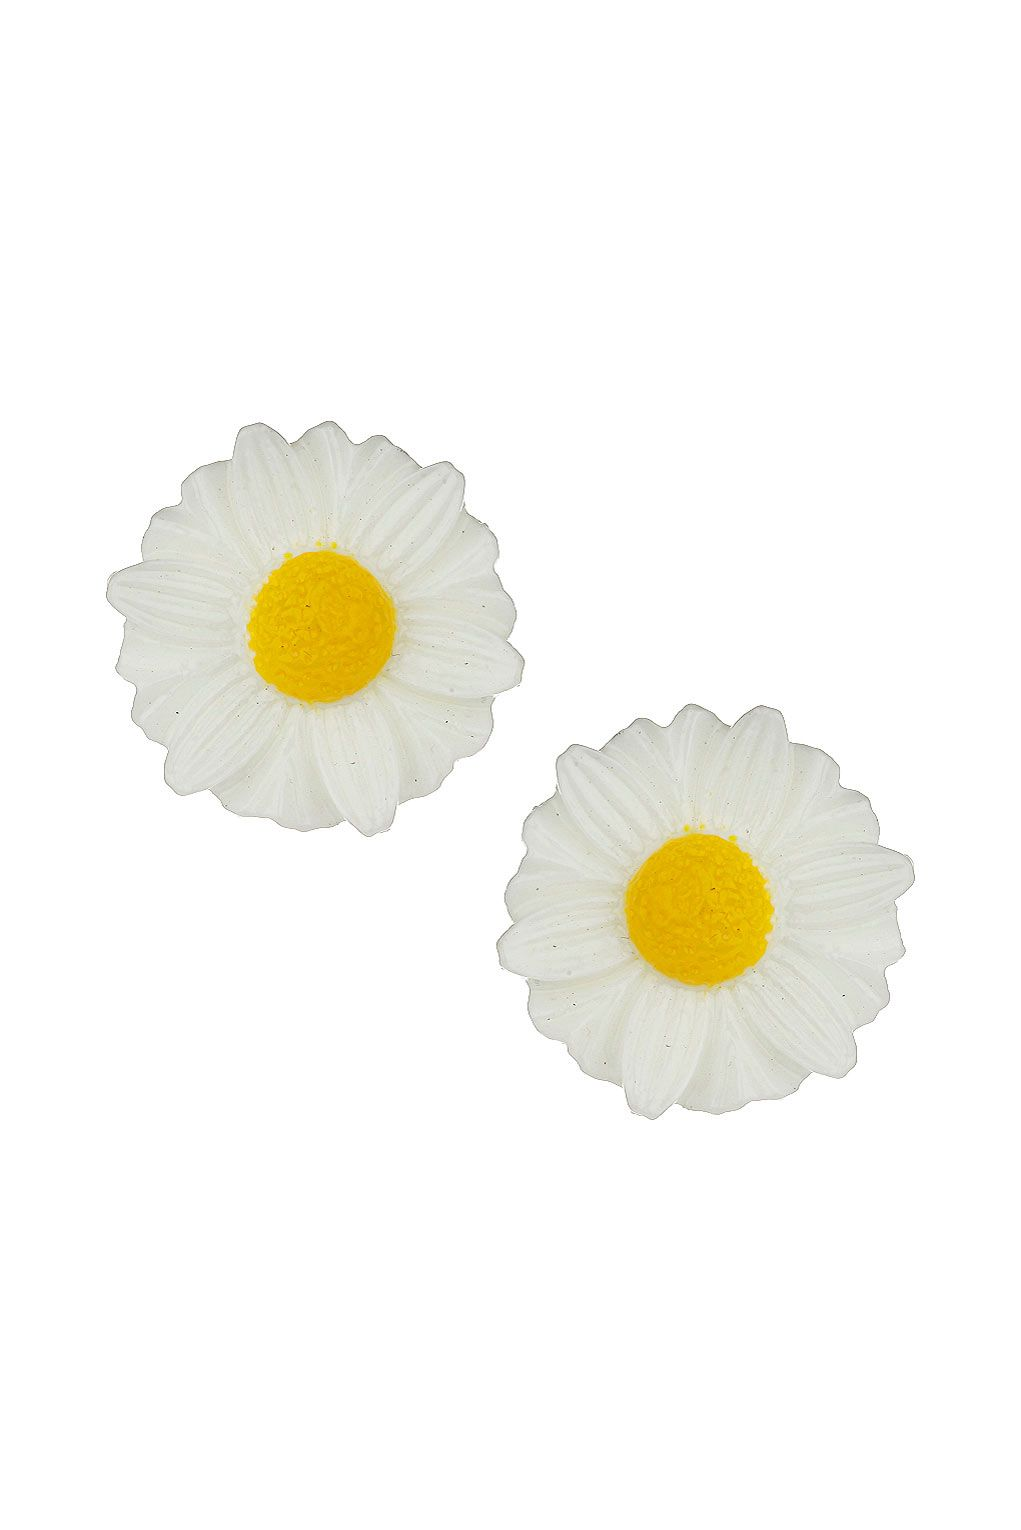 Daisy Stud Earrings - Earrings - Jewellery - Bags & Accessories - Topshop White and yellow coloured plastic daisy studs, length 2cm by Freedom at Topshop